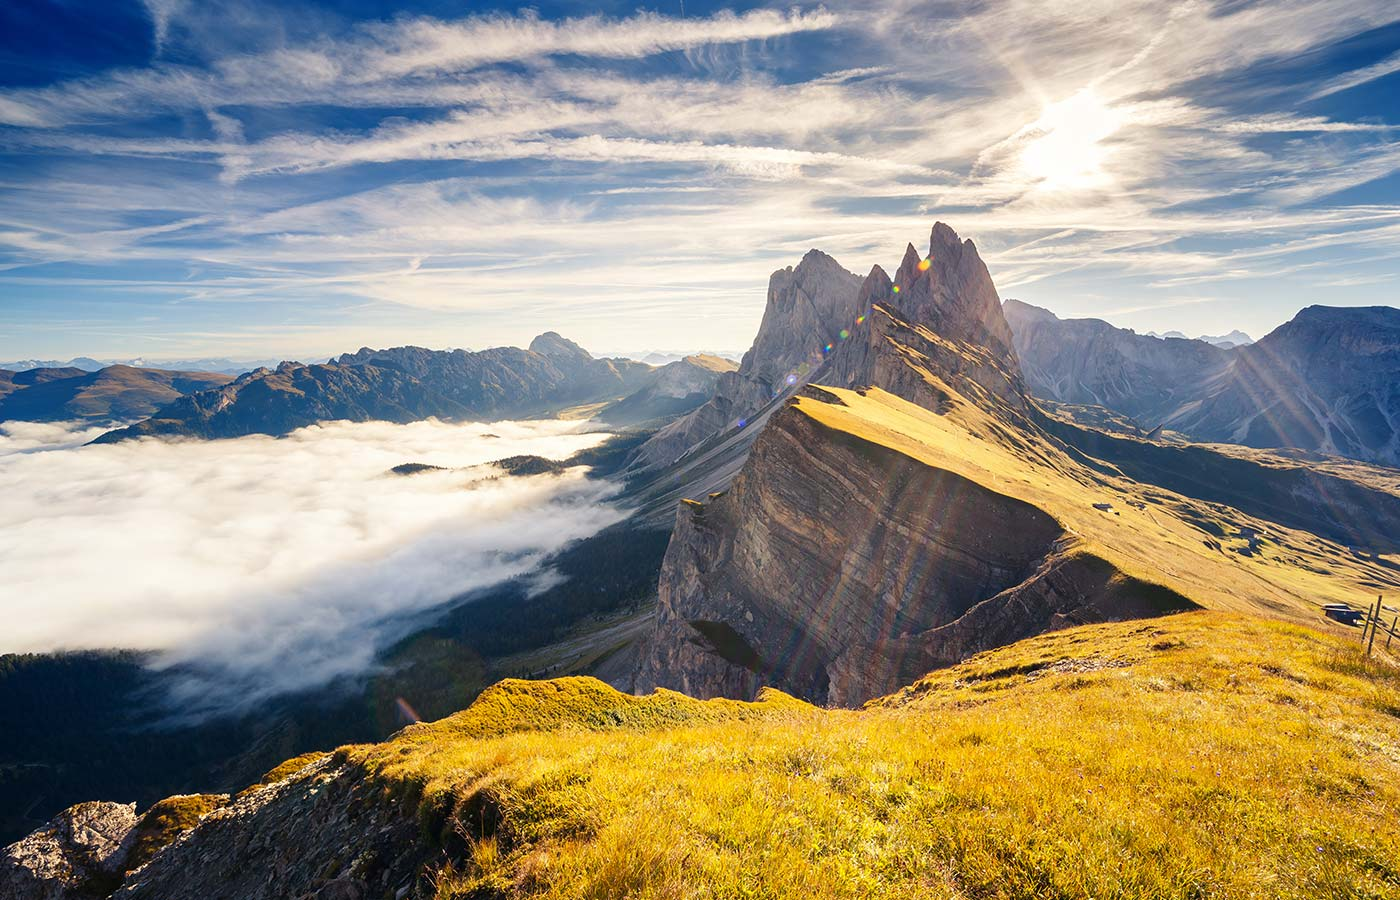 View of Dolomites in the sun with some clouds